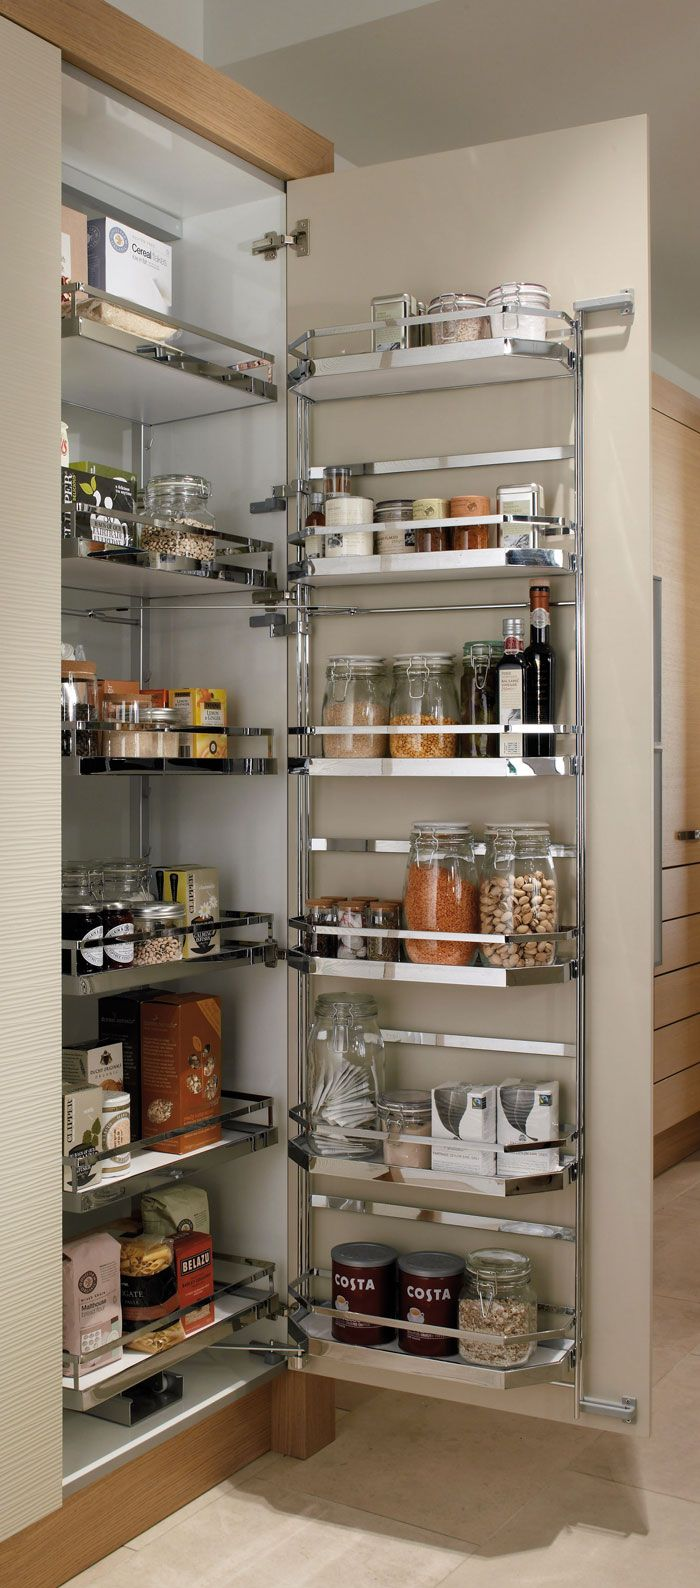 Best 10+ Kitchen storage ideas on Pinterest | Kitchen sink ...